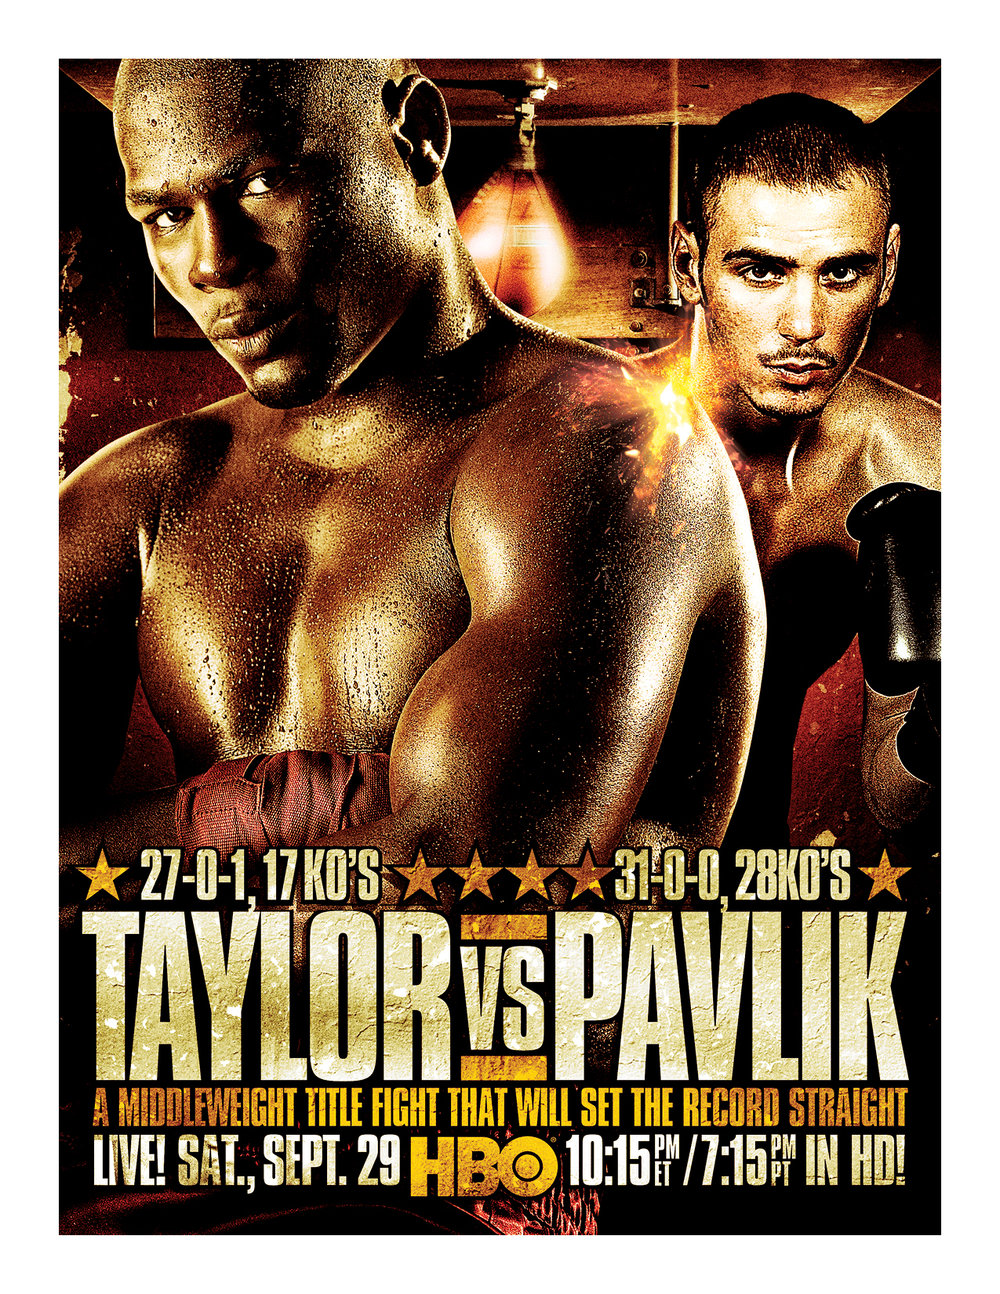 HBO Boxing P360 Website31.jpg